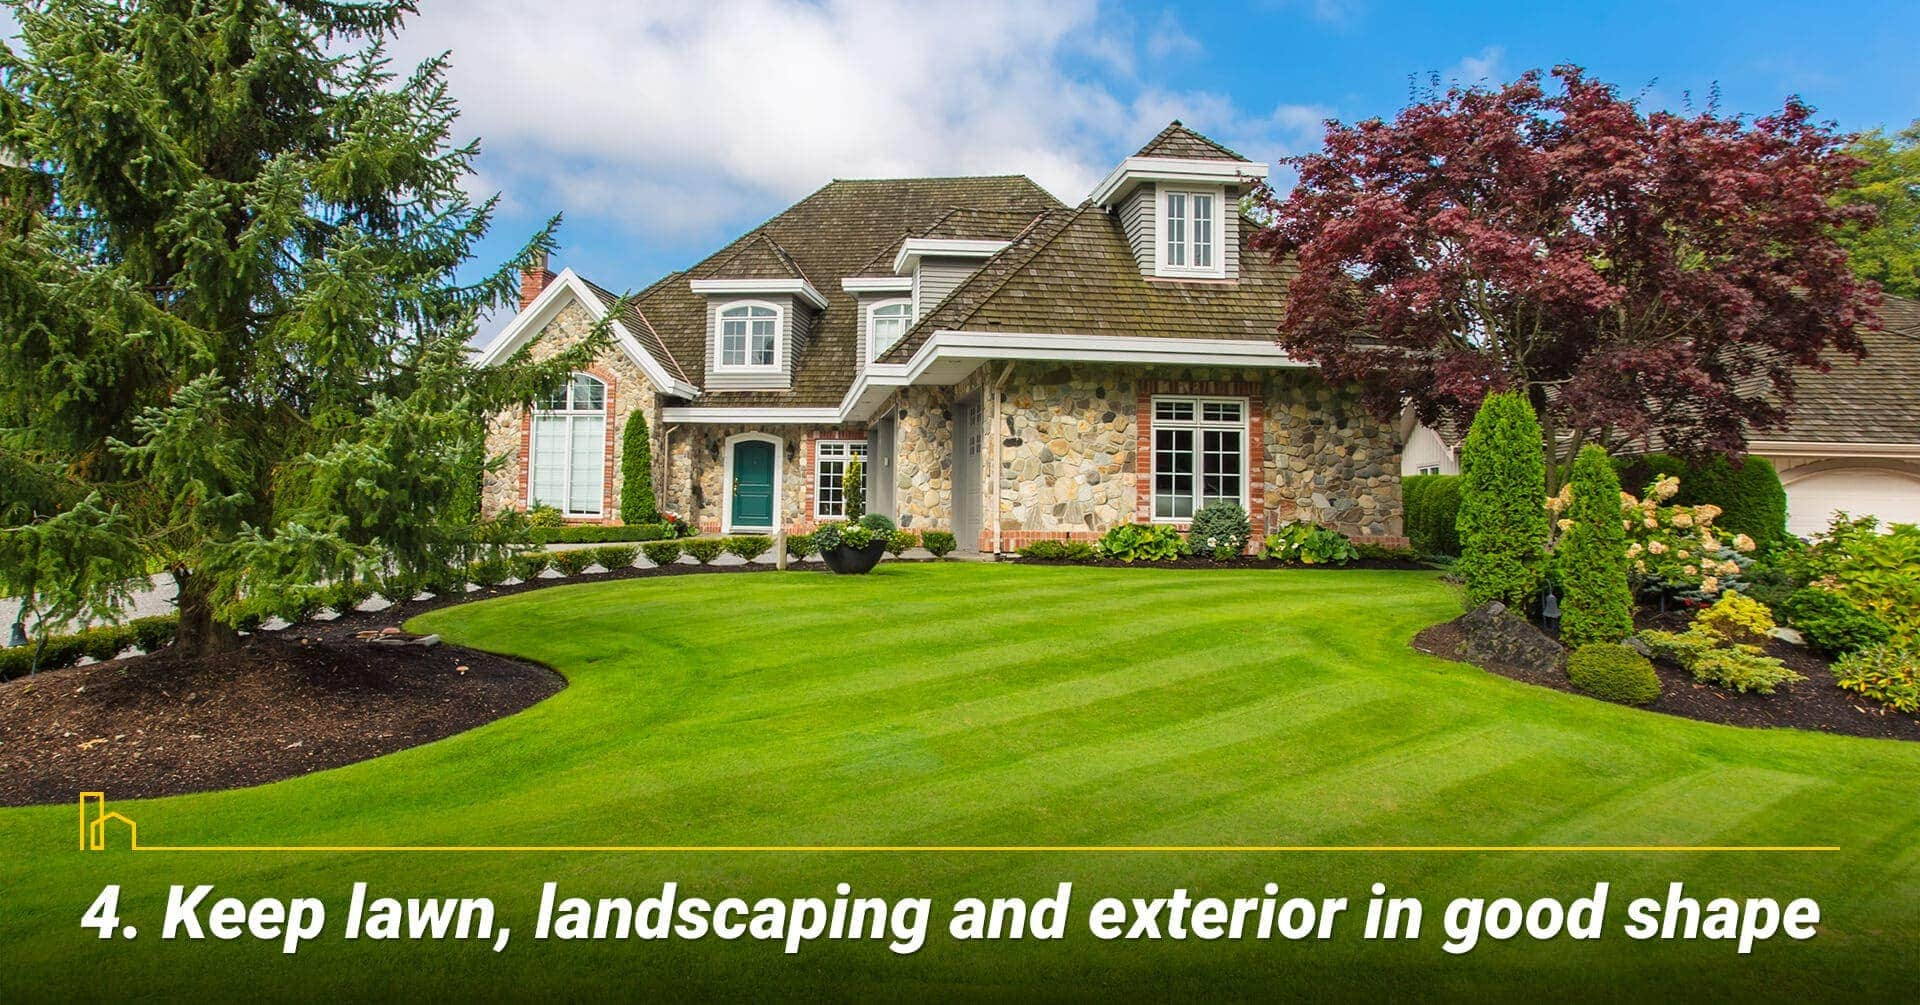 Keep lawn, landscaping and exterior in good shape